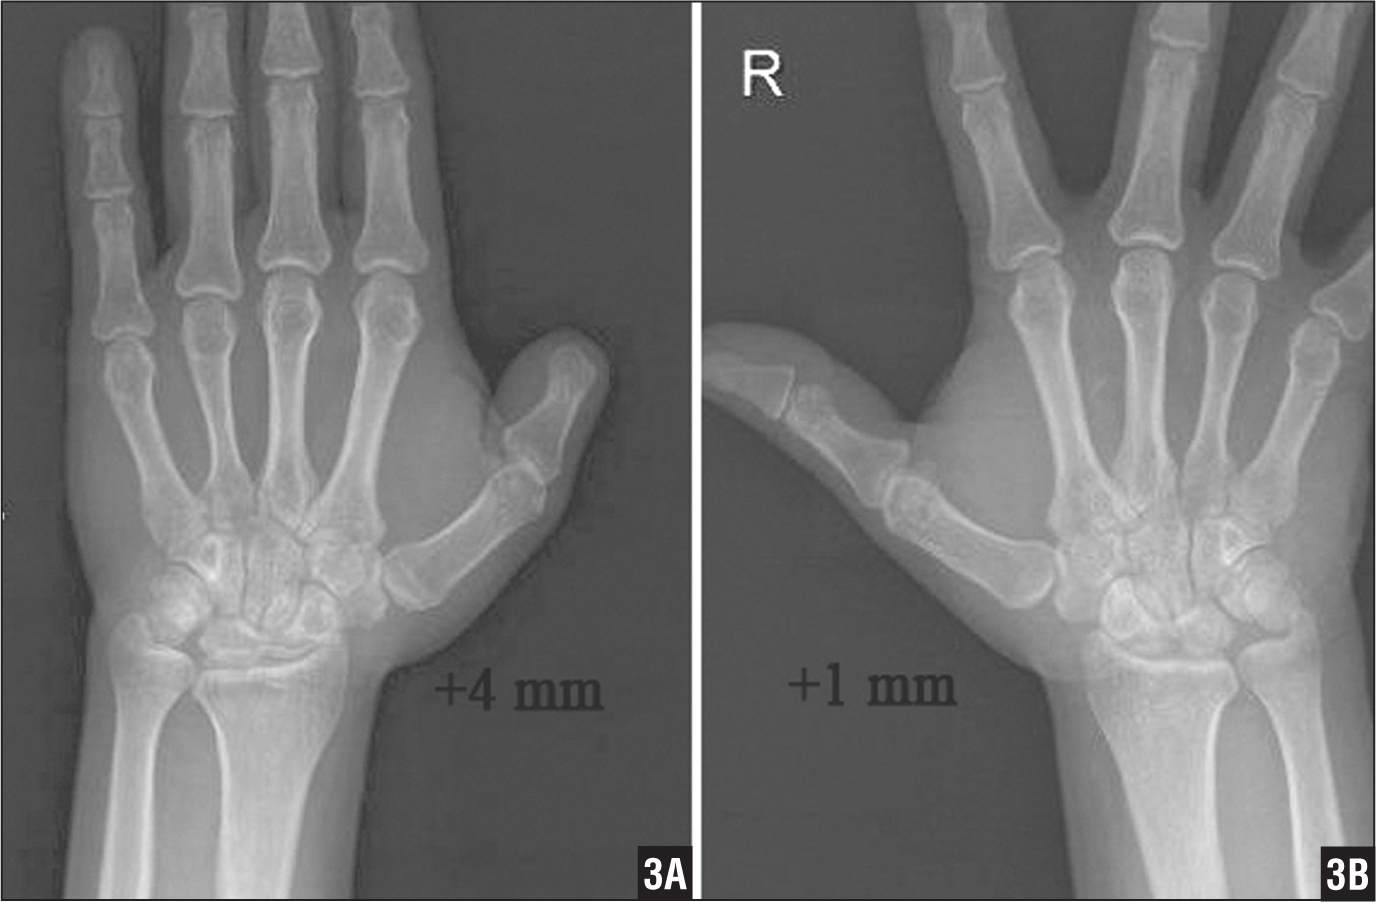 Bilateral anteroposterior radiographs of the wrists revealing a 3-mm increase in the ulnar variance in the left wrist (A) compared with the uninjured right wrist (B) in a 38-year-old man with 10 years of follow-up.